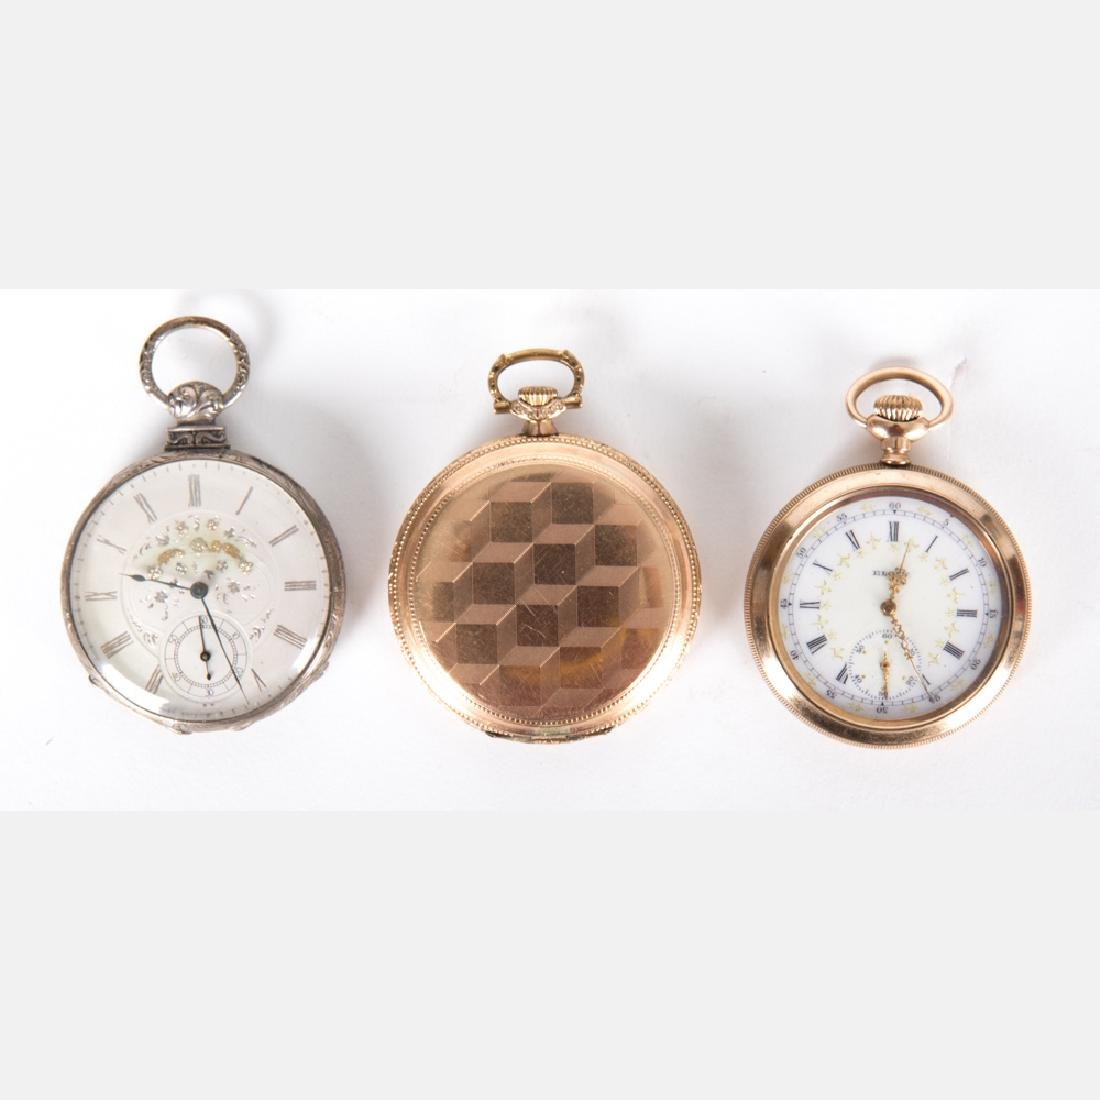 A Group of Three Gold Plated Pocket Watches by Various